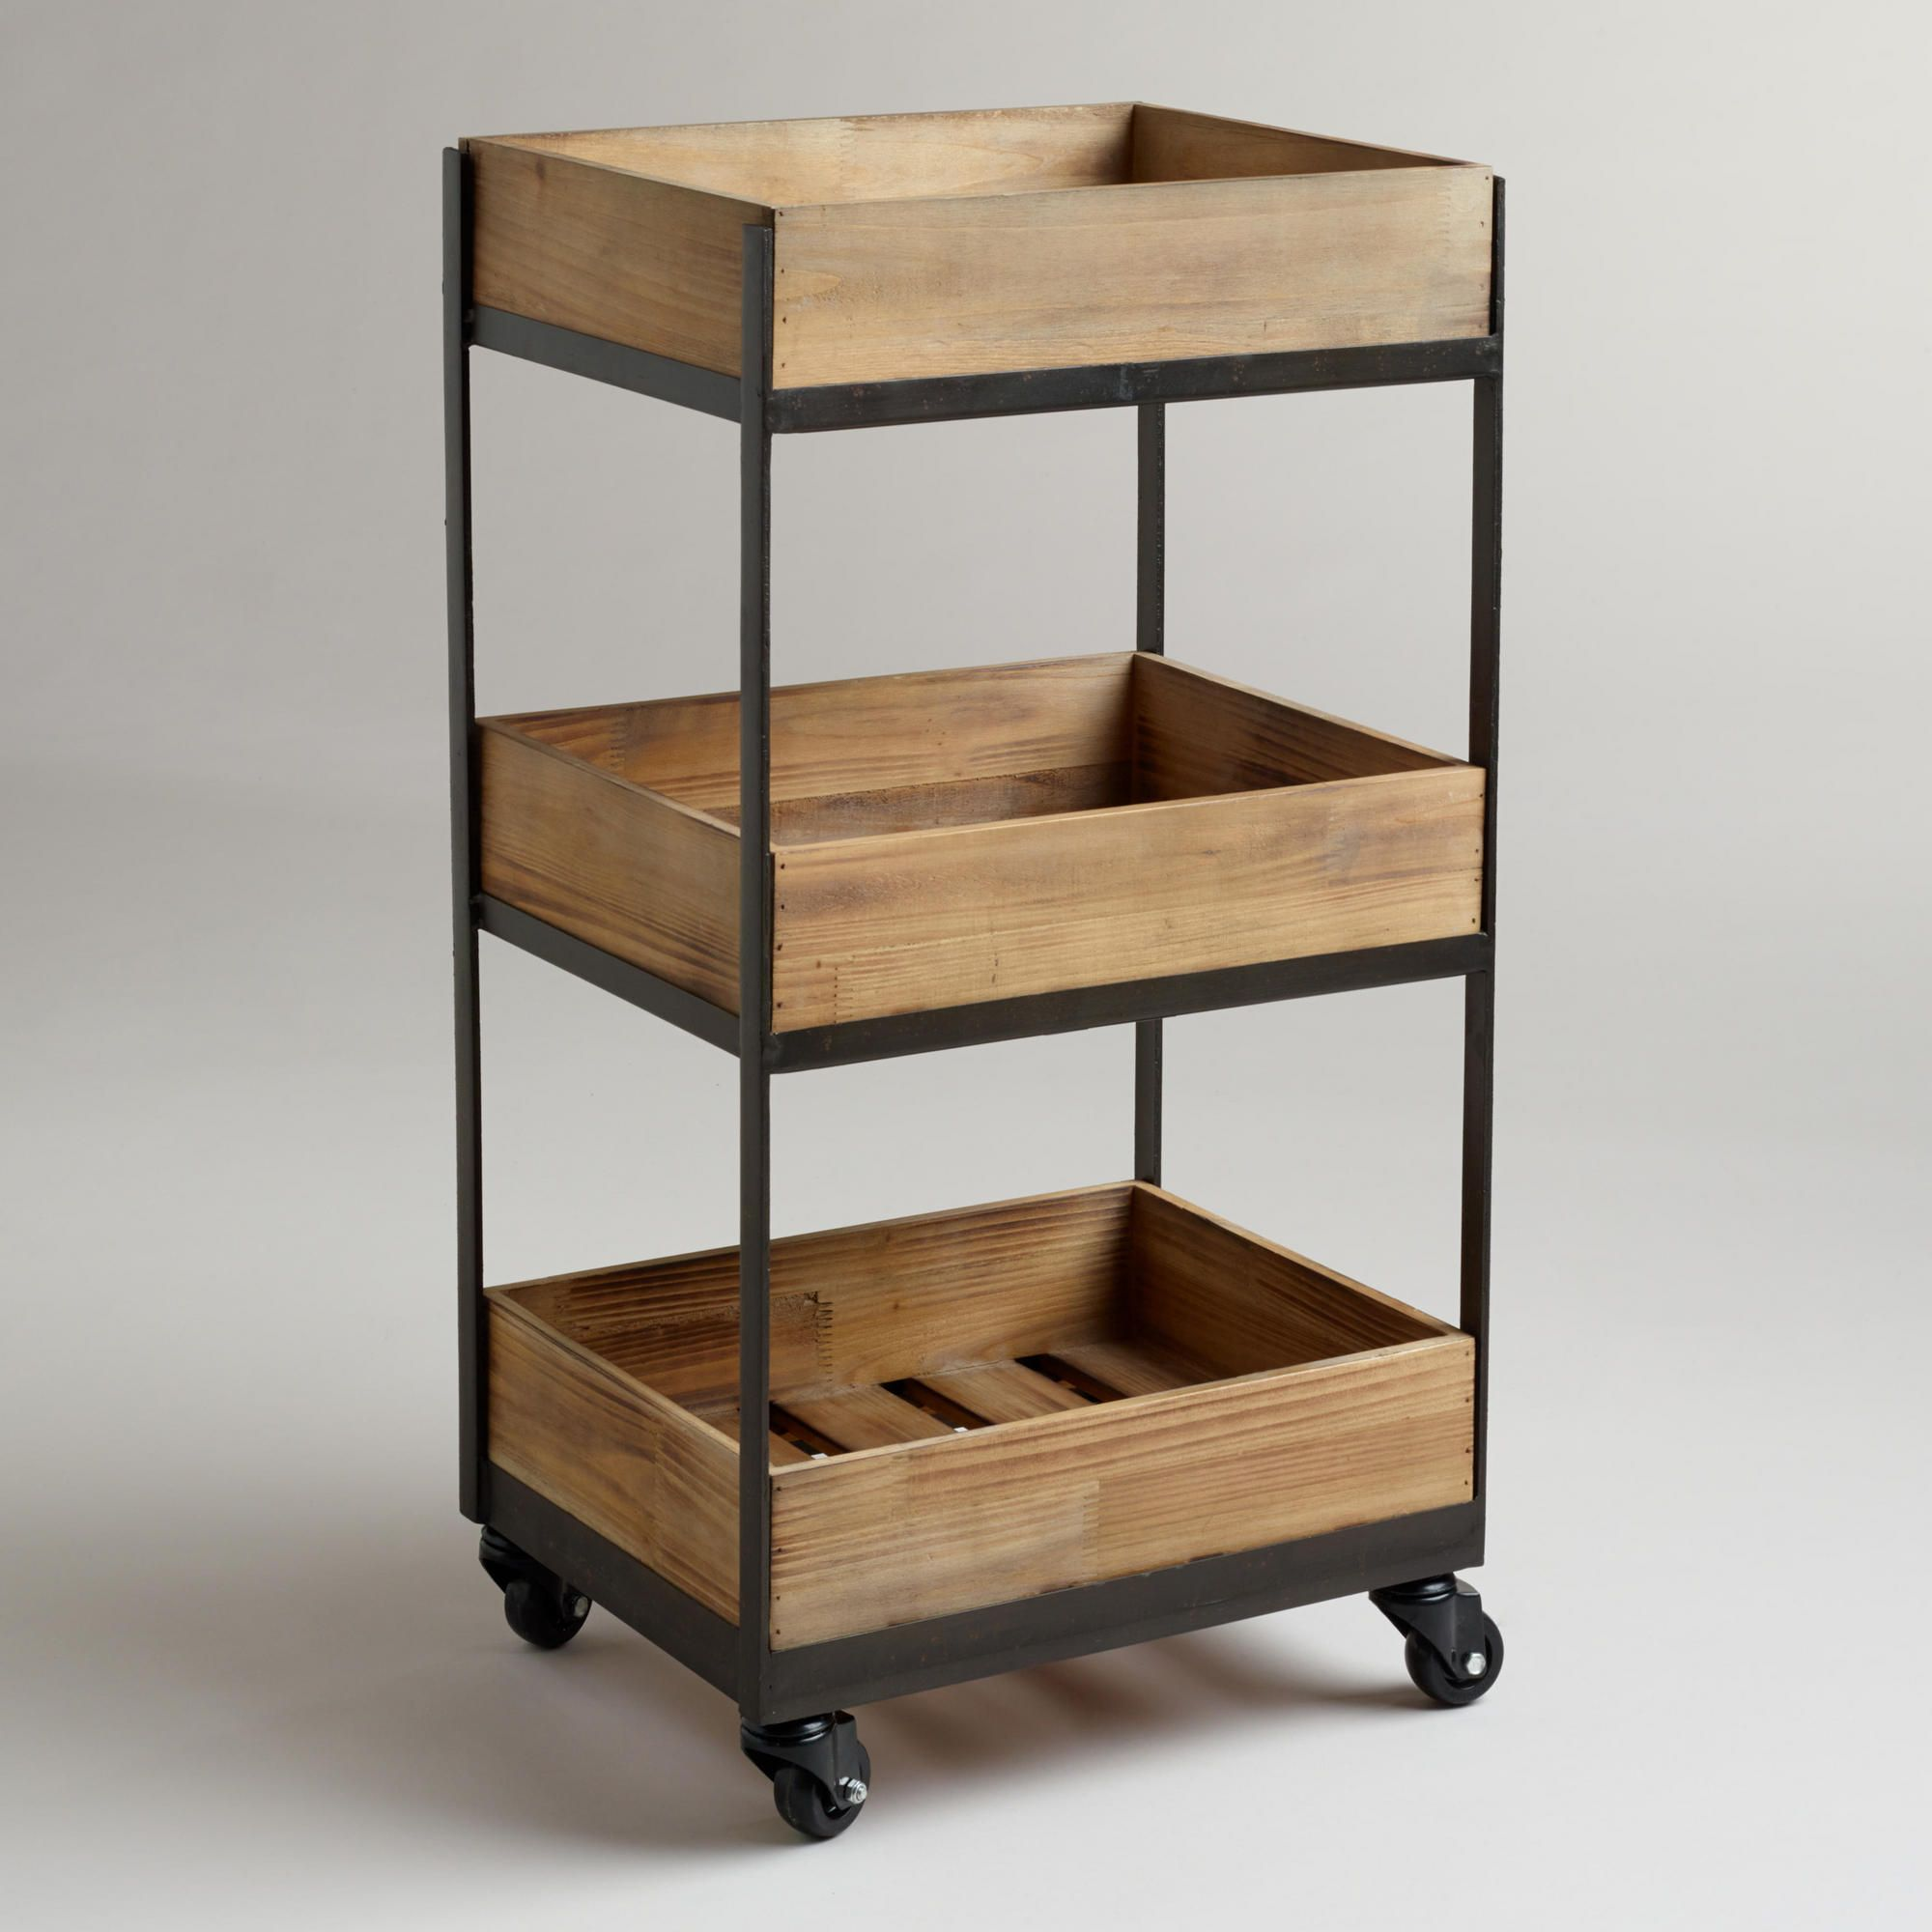 Industrial Rolling Kitchen Cart: 3-Shelf Wooden Gavin Rolling Cart